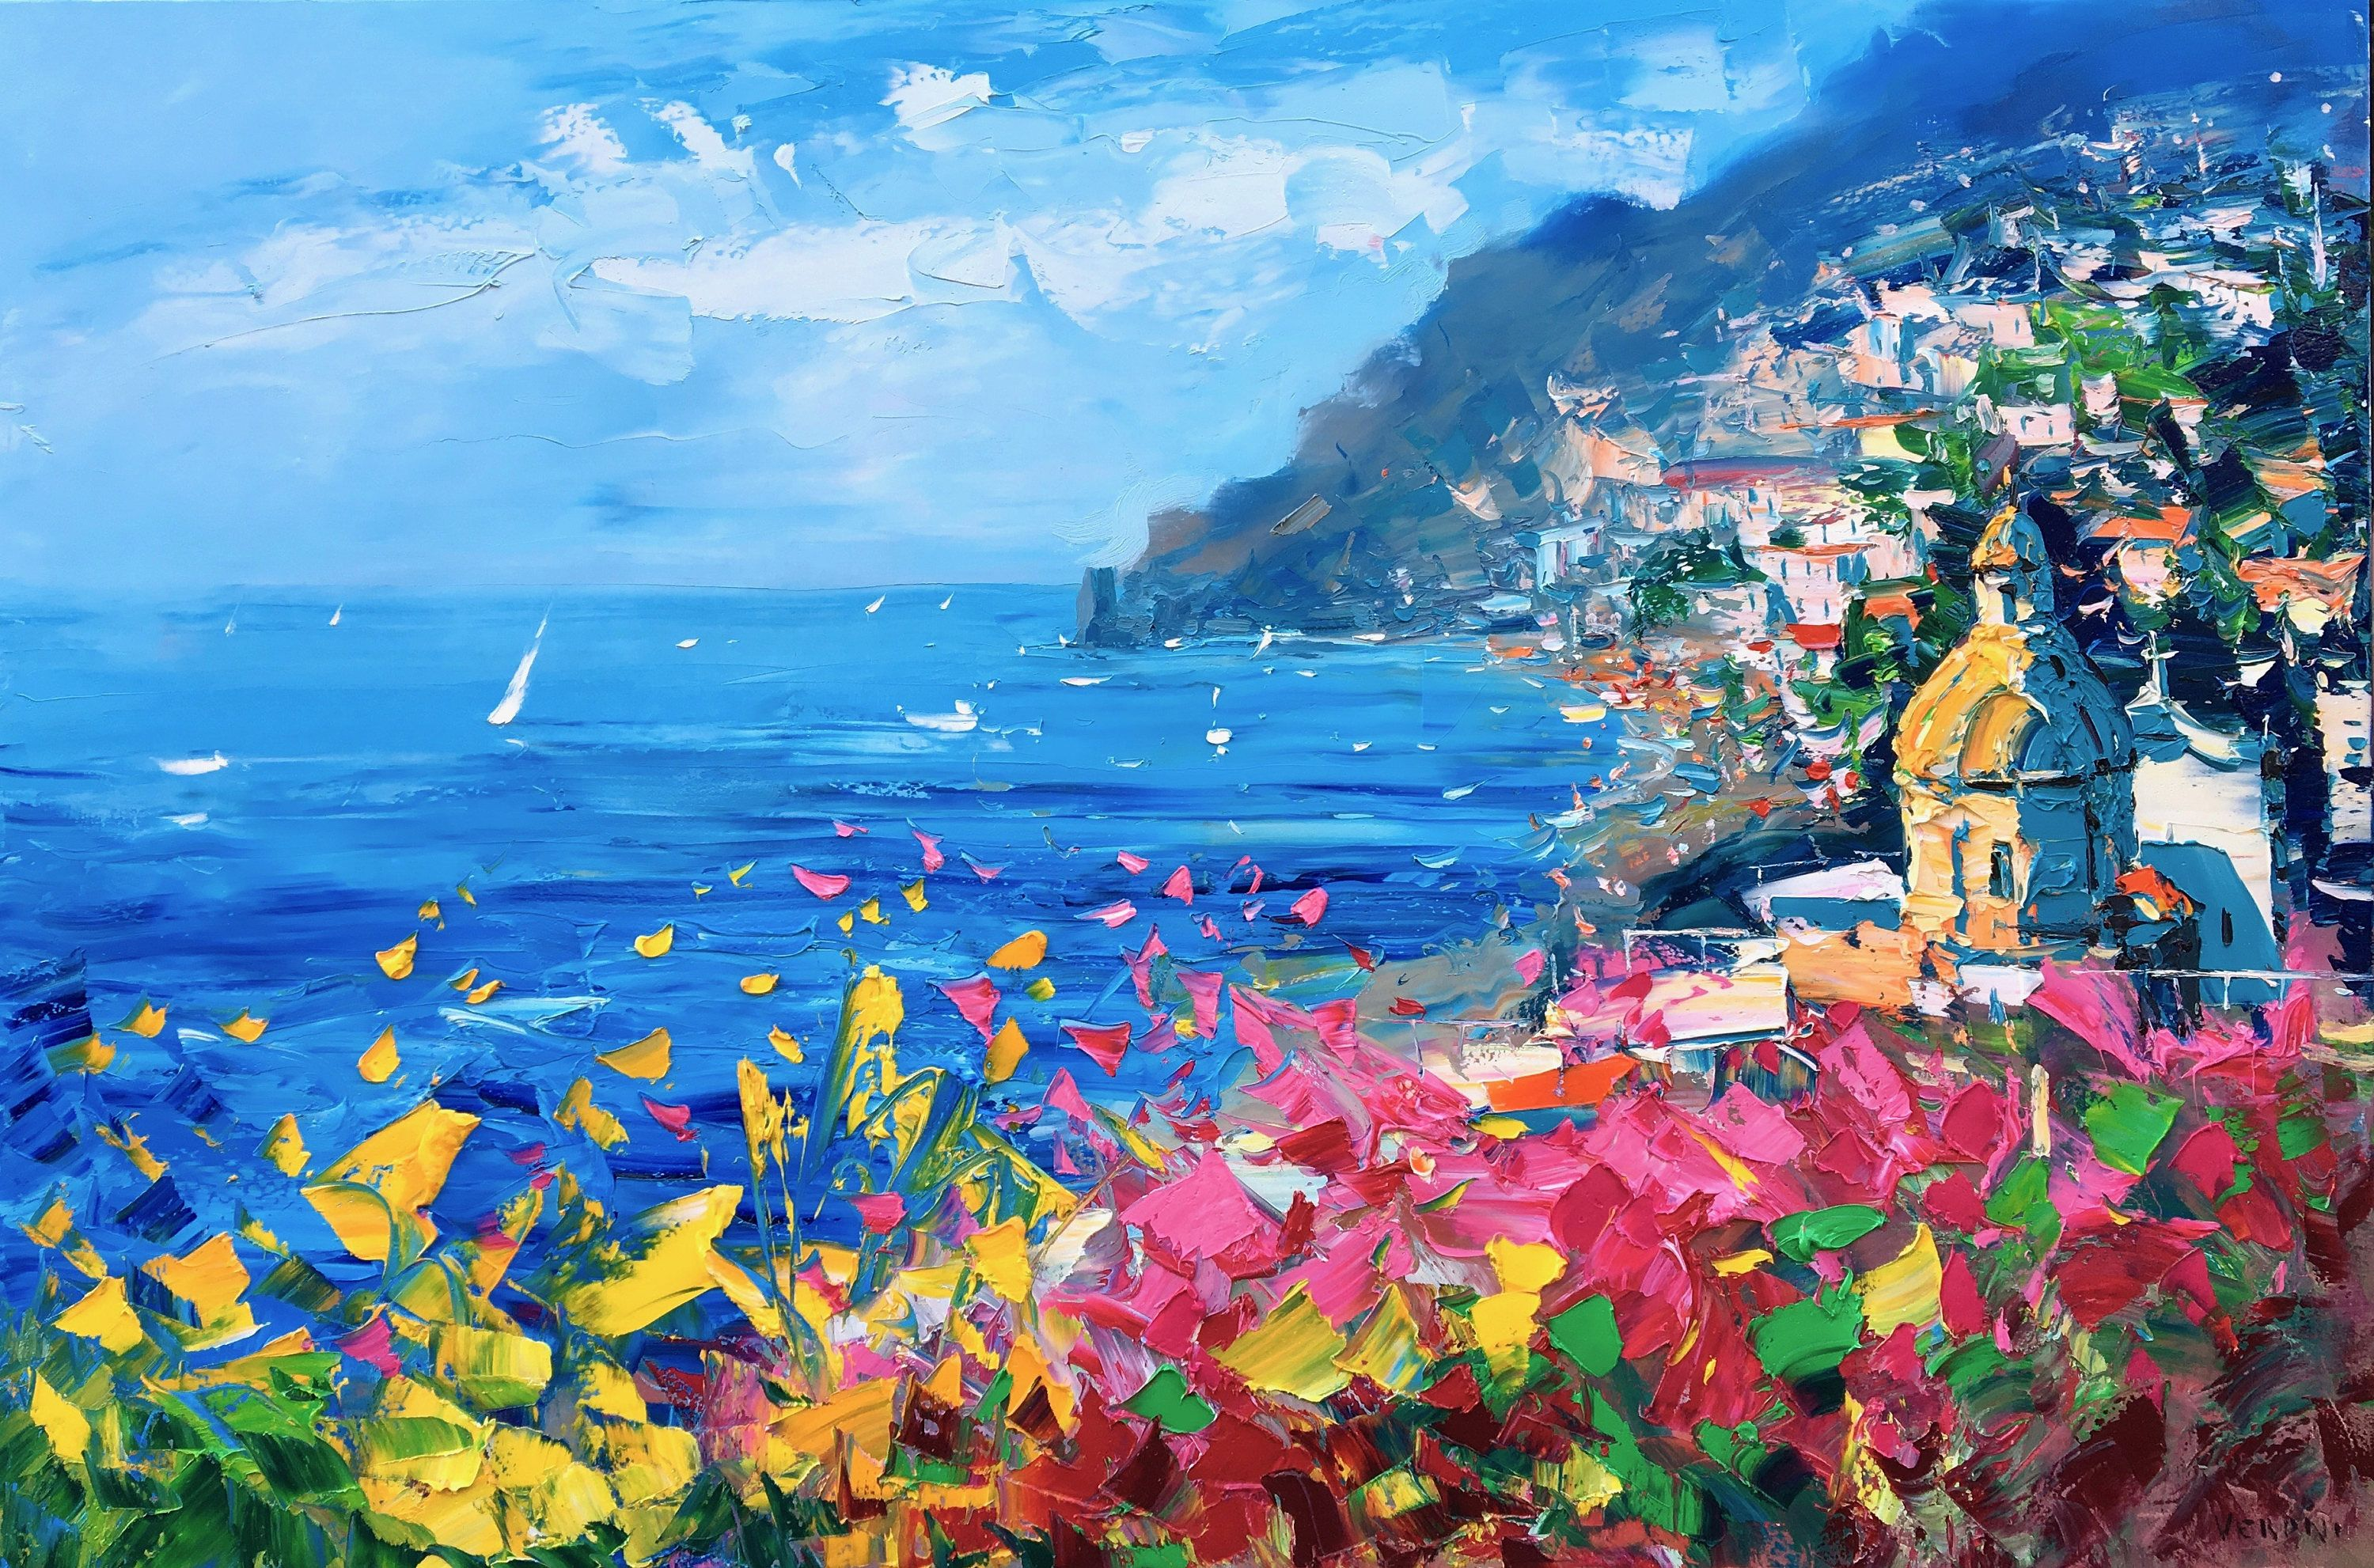 Positano Painting On Canvas Original Art Amalfi Coast Seascape Painting Impressionist Art Living Room Decor Large Wall Art Gift Ideas Italy Painting Seascape Wall Art Seascape Print